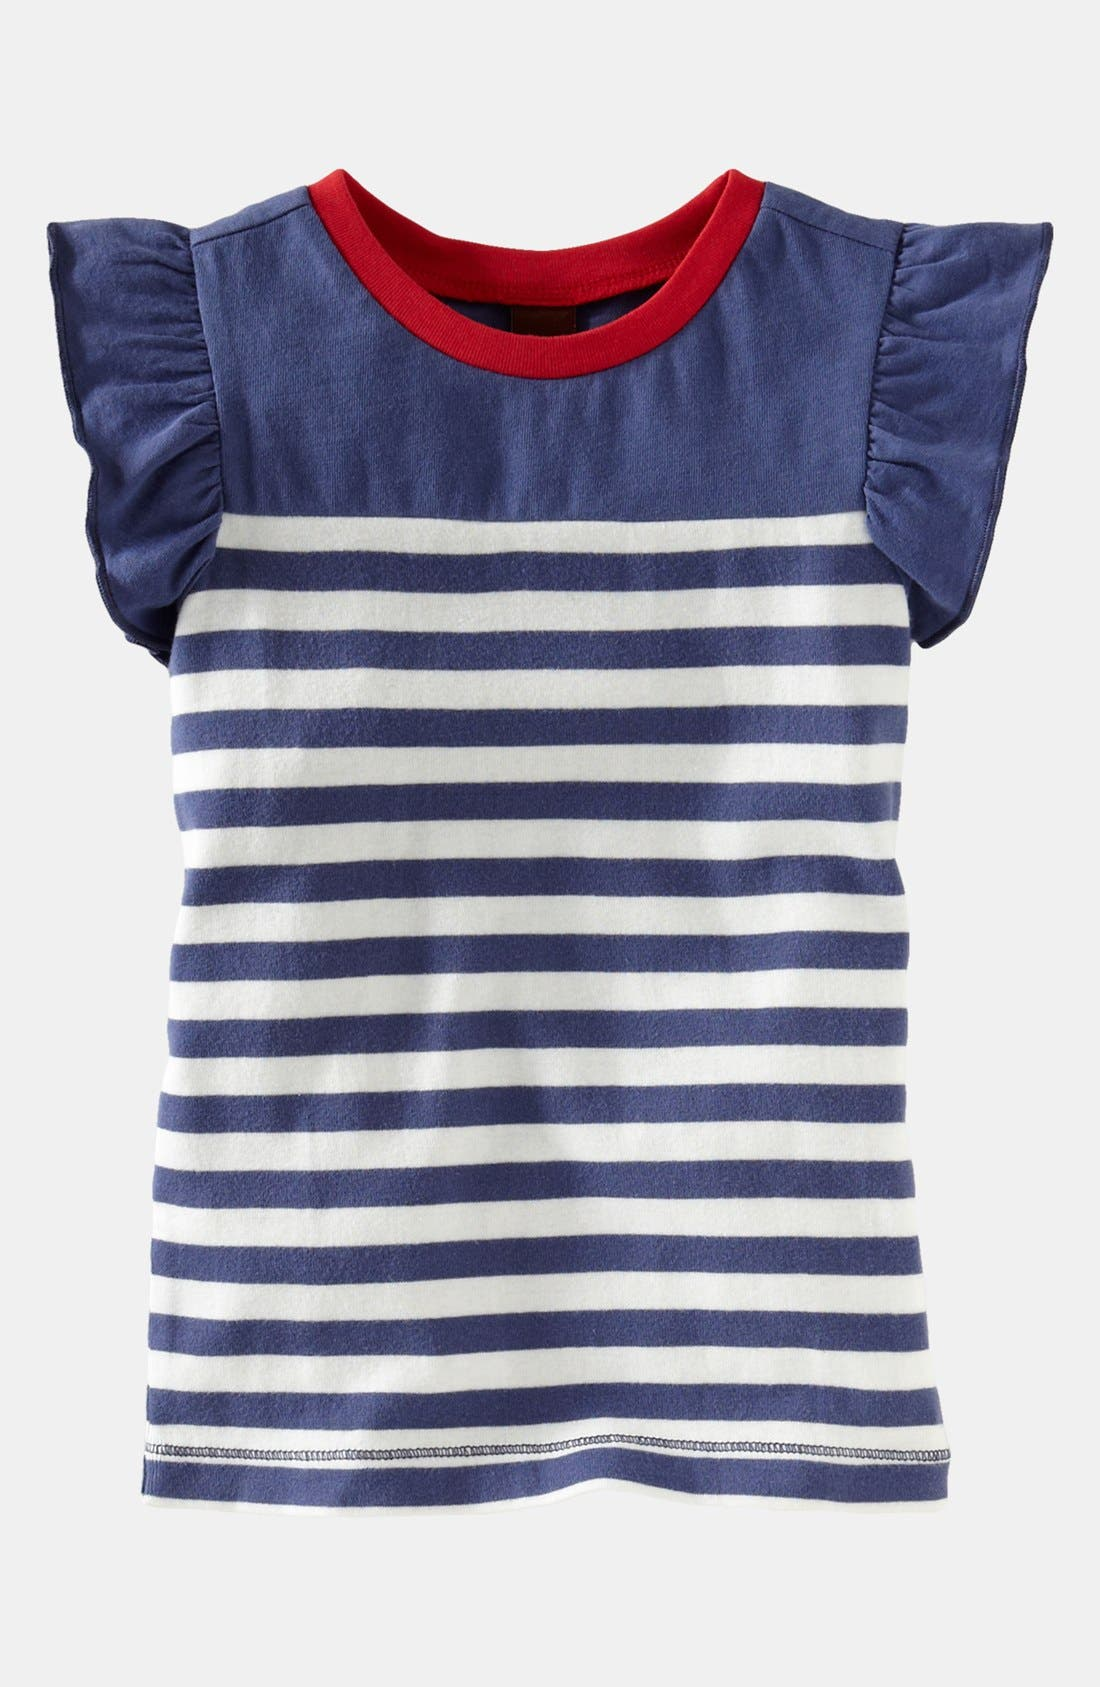 Alternate Image 1 Selected - Tea Collection 'Coastal' Tee (Little Girls & Big Girls)